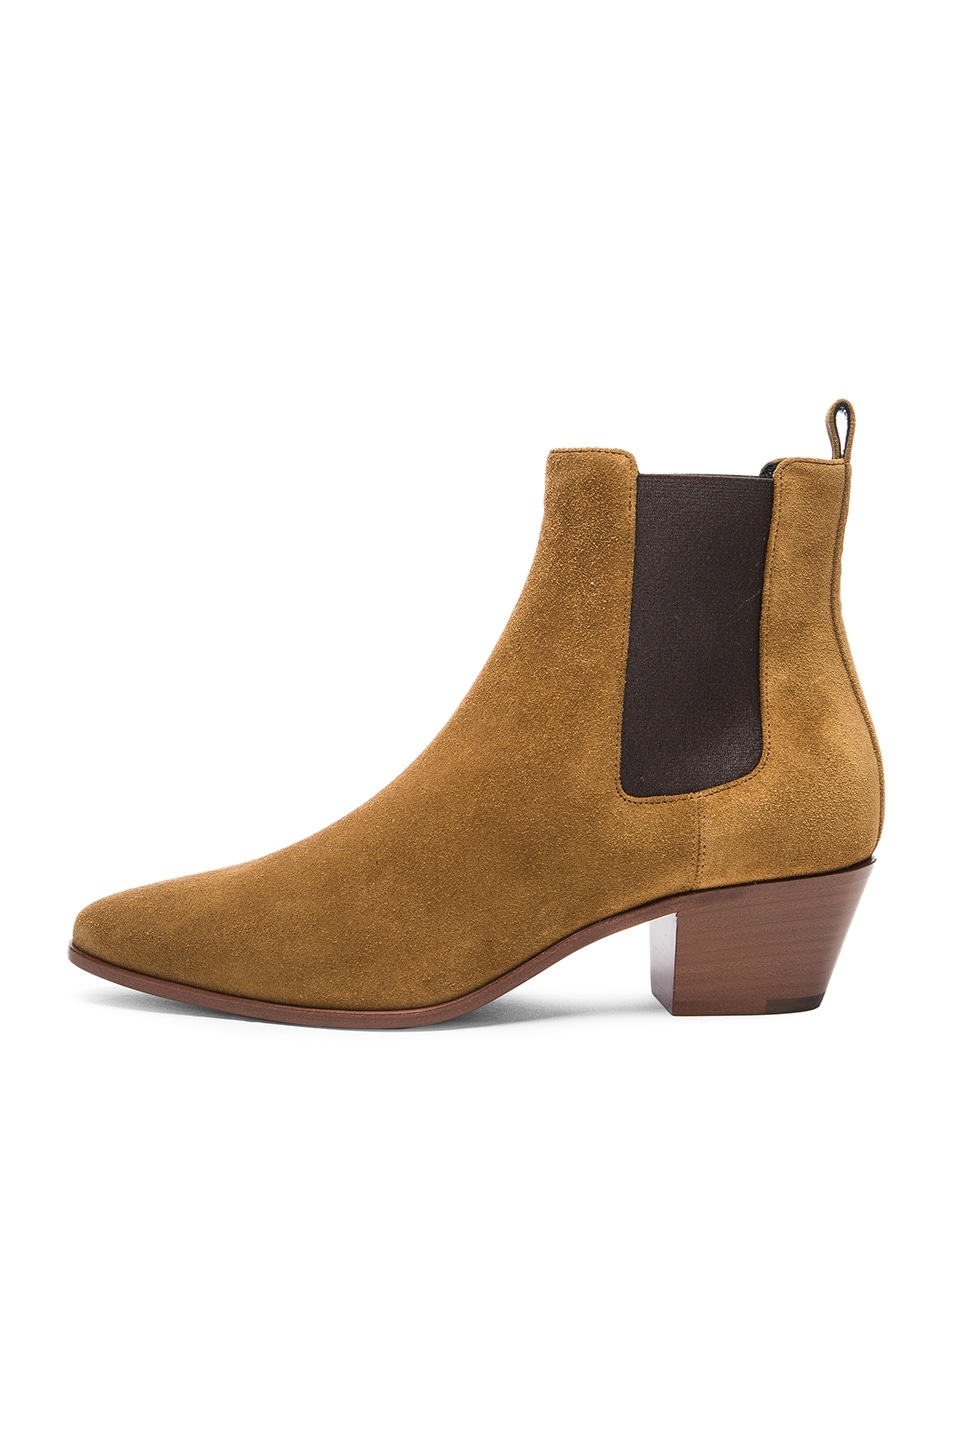 Image 5 of Saint Laurent Suede Rock Chelsea Boots in Tan